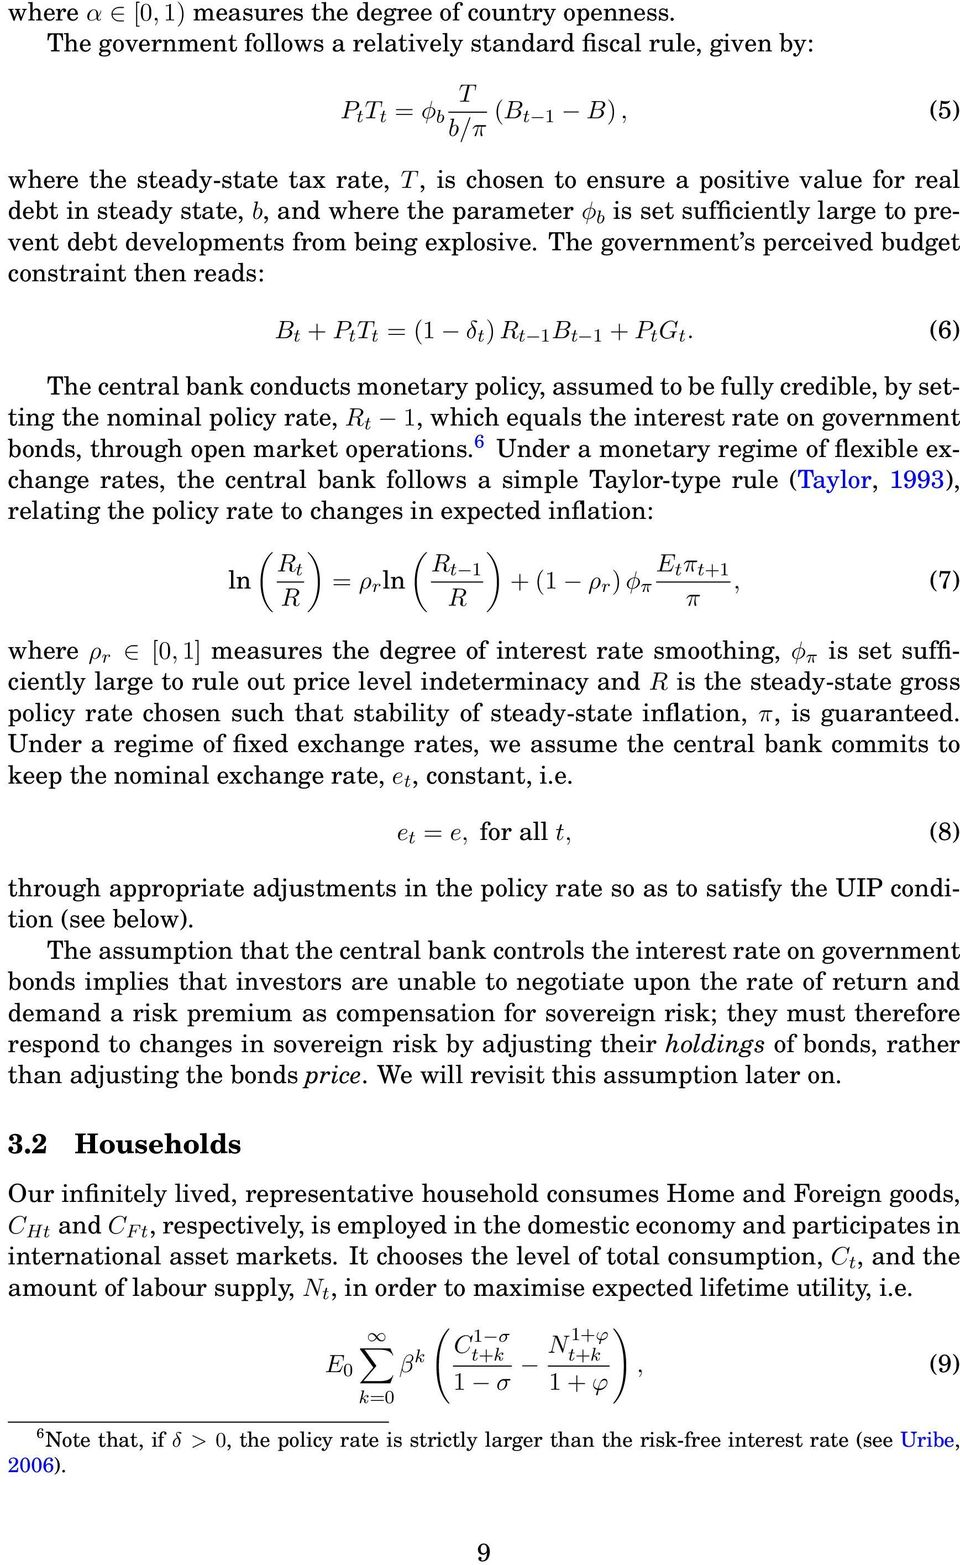 state, b, and where the parameter φ b is set sufficiently large to prevent debt developments from being explosive.